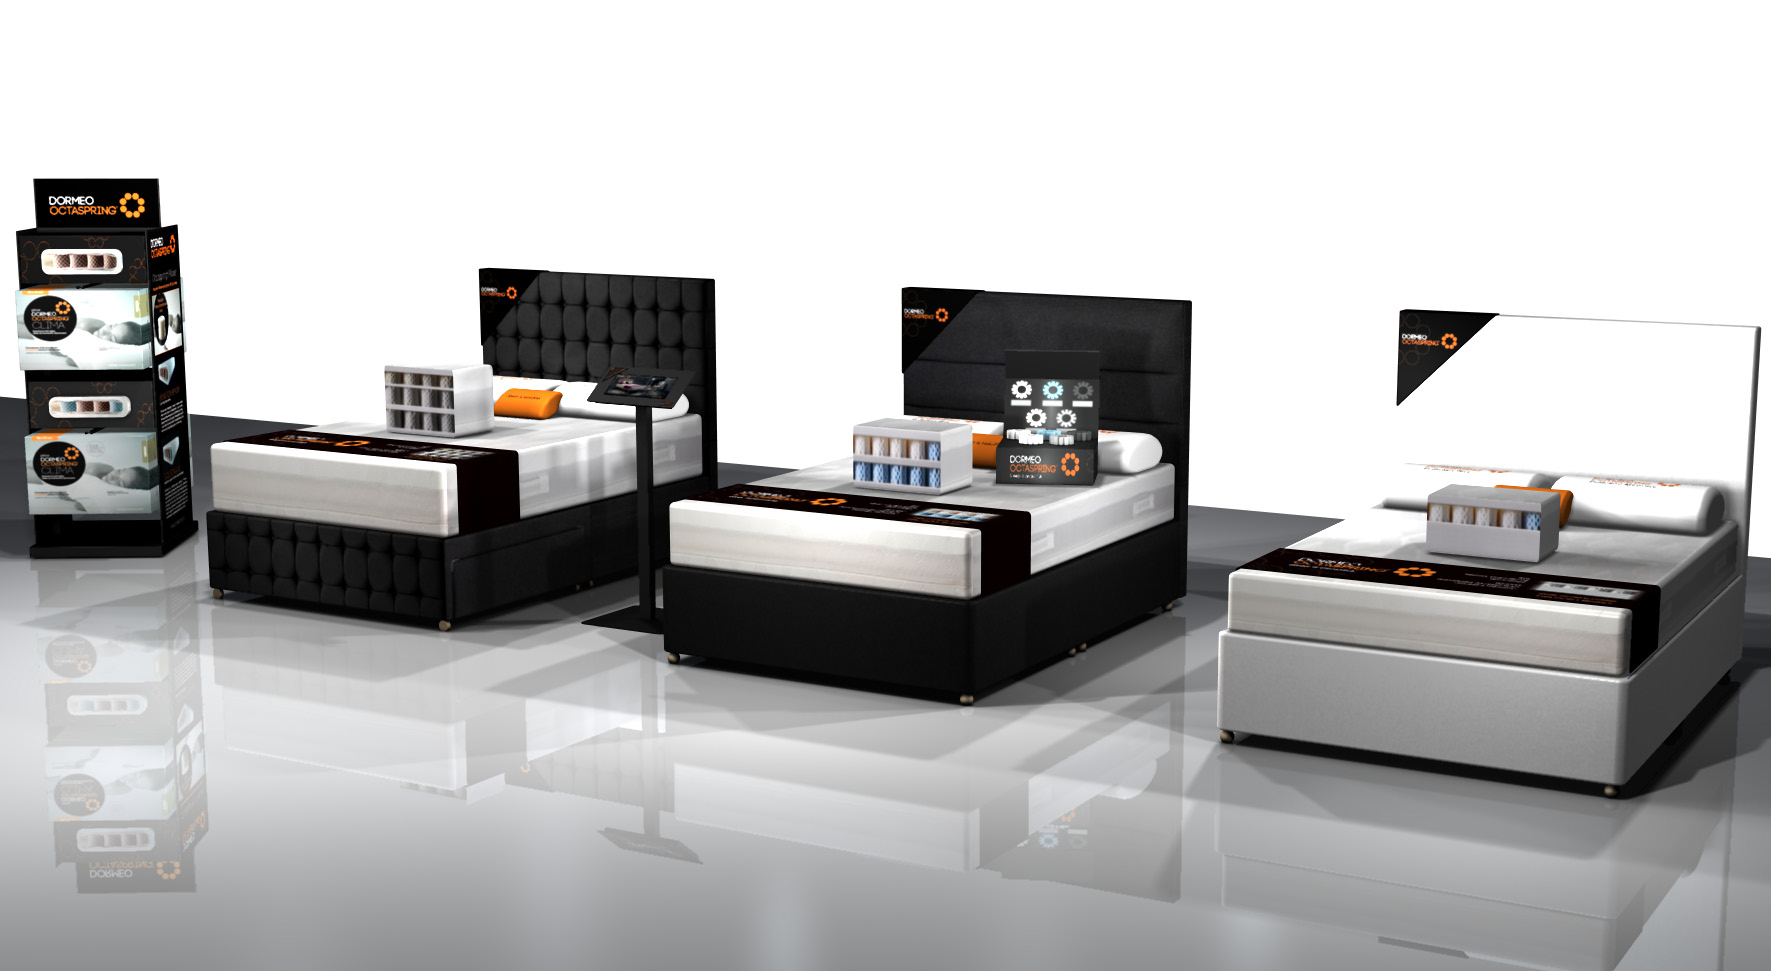 Designs for Octaspring's point of sale display in Sleep